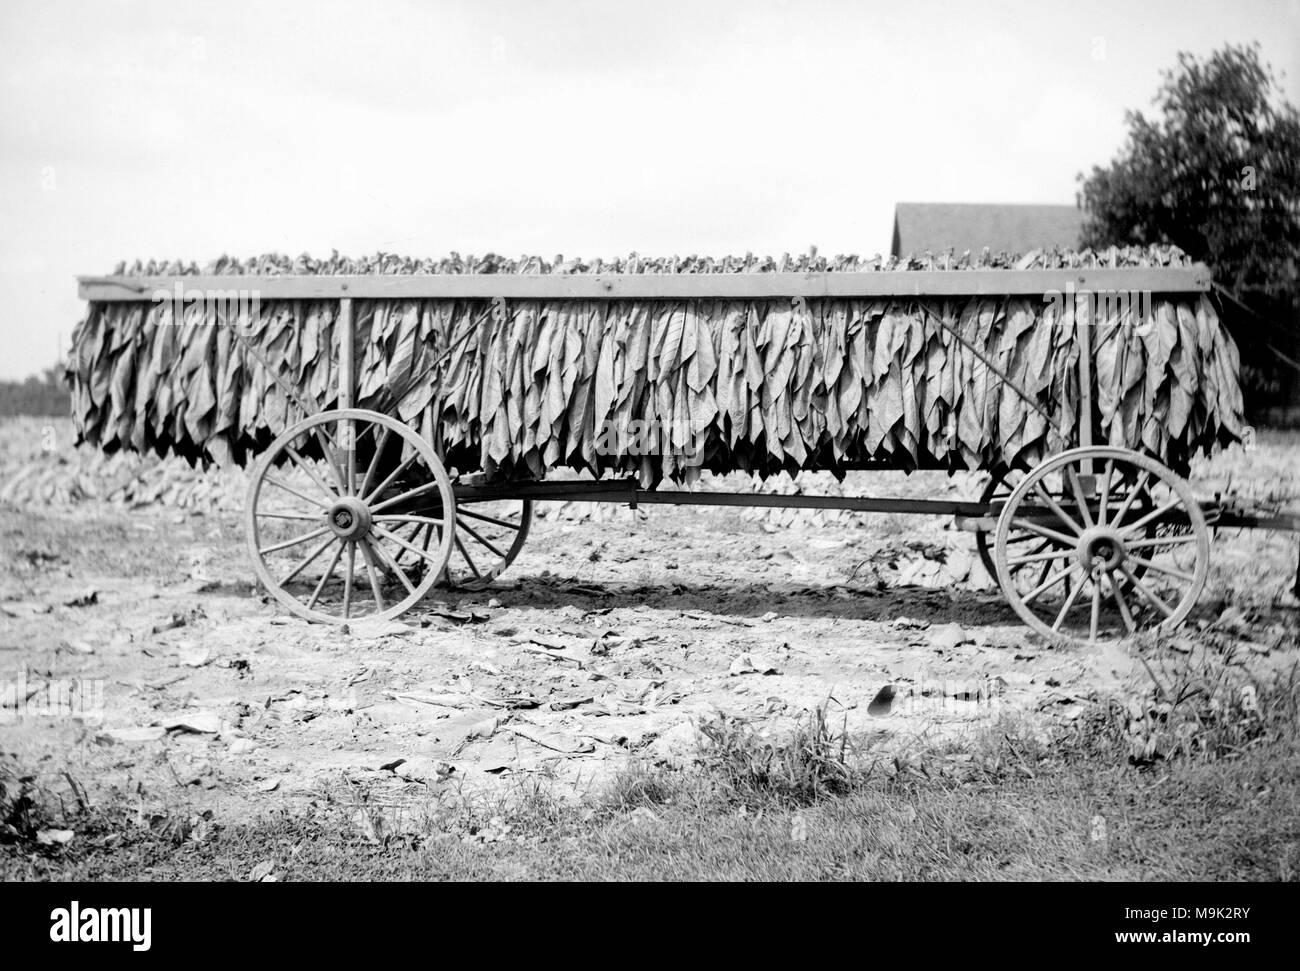 A crop of newly picked tobacco hangs on a horse-pulled wagon on a North Carolina farm, ca. 1925. - Stock Image